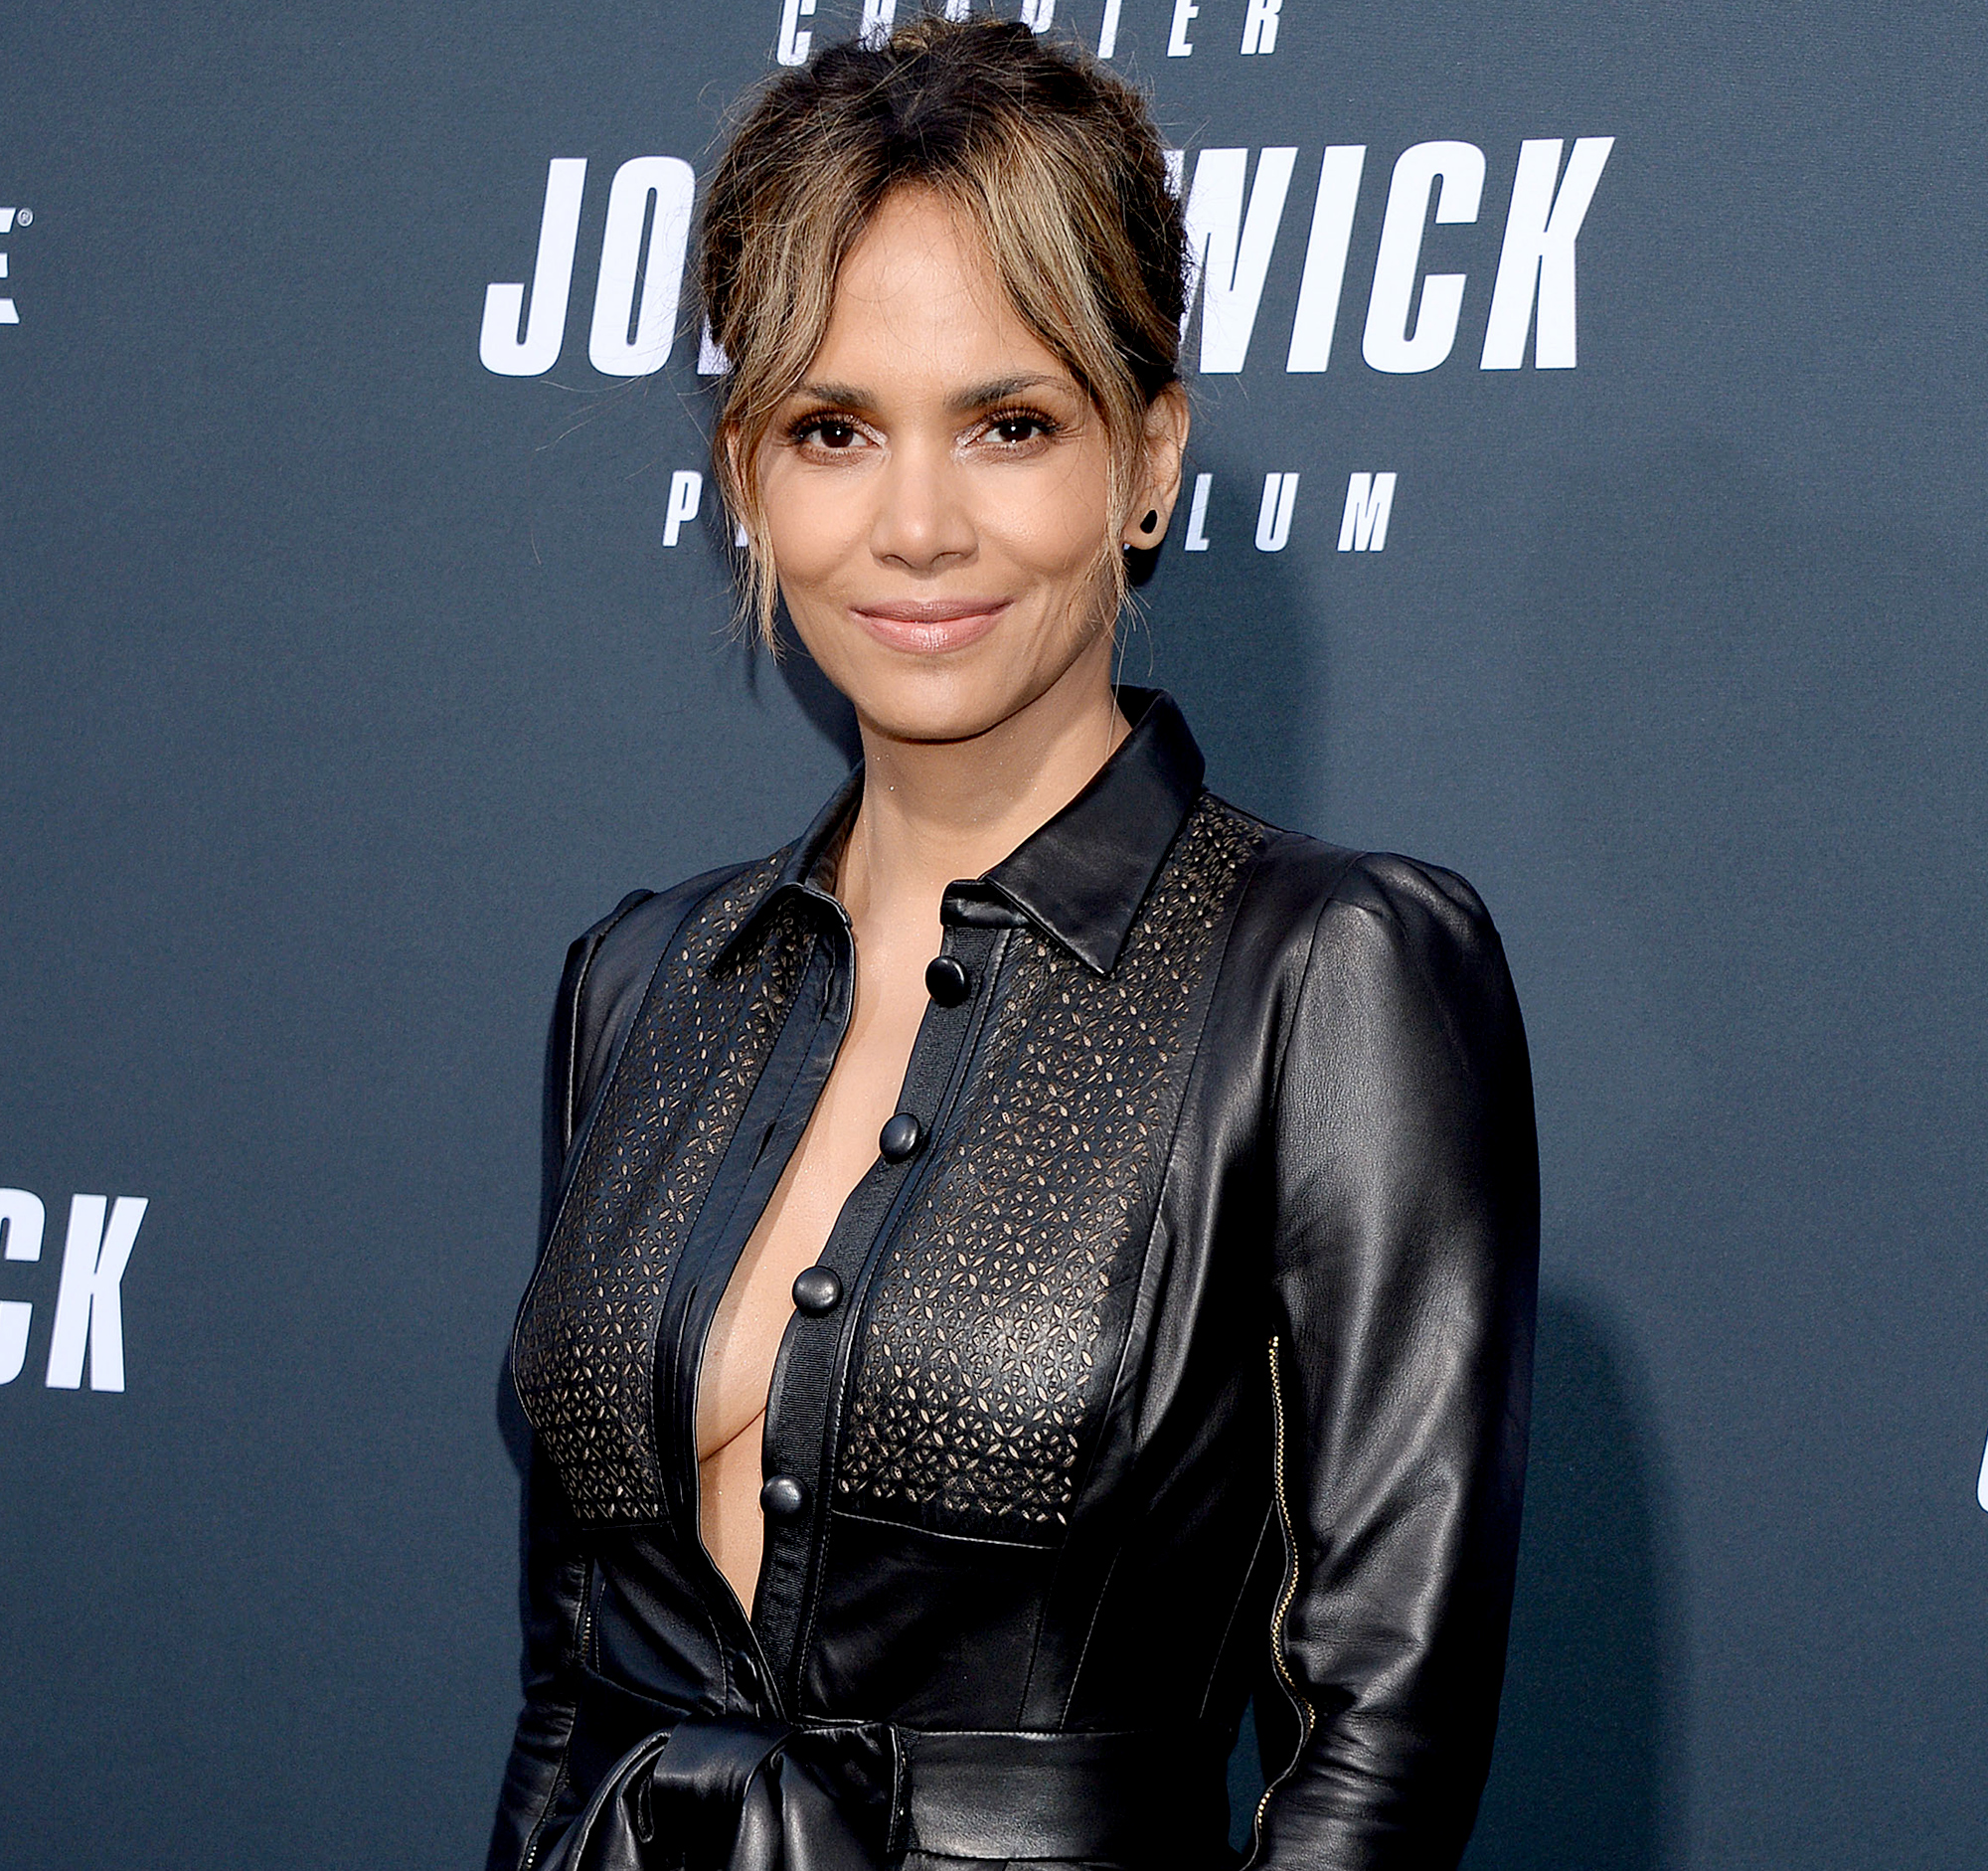 Halle Berry Teases That She Has a New Boyfriend 2 Years After Saying She Was Done With Love